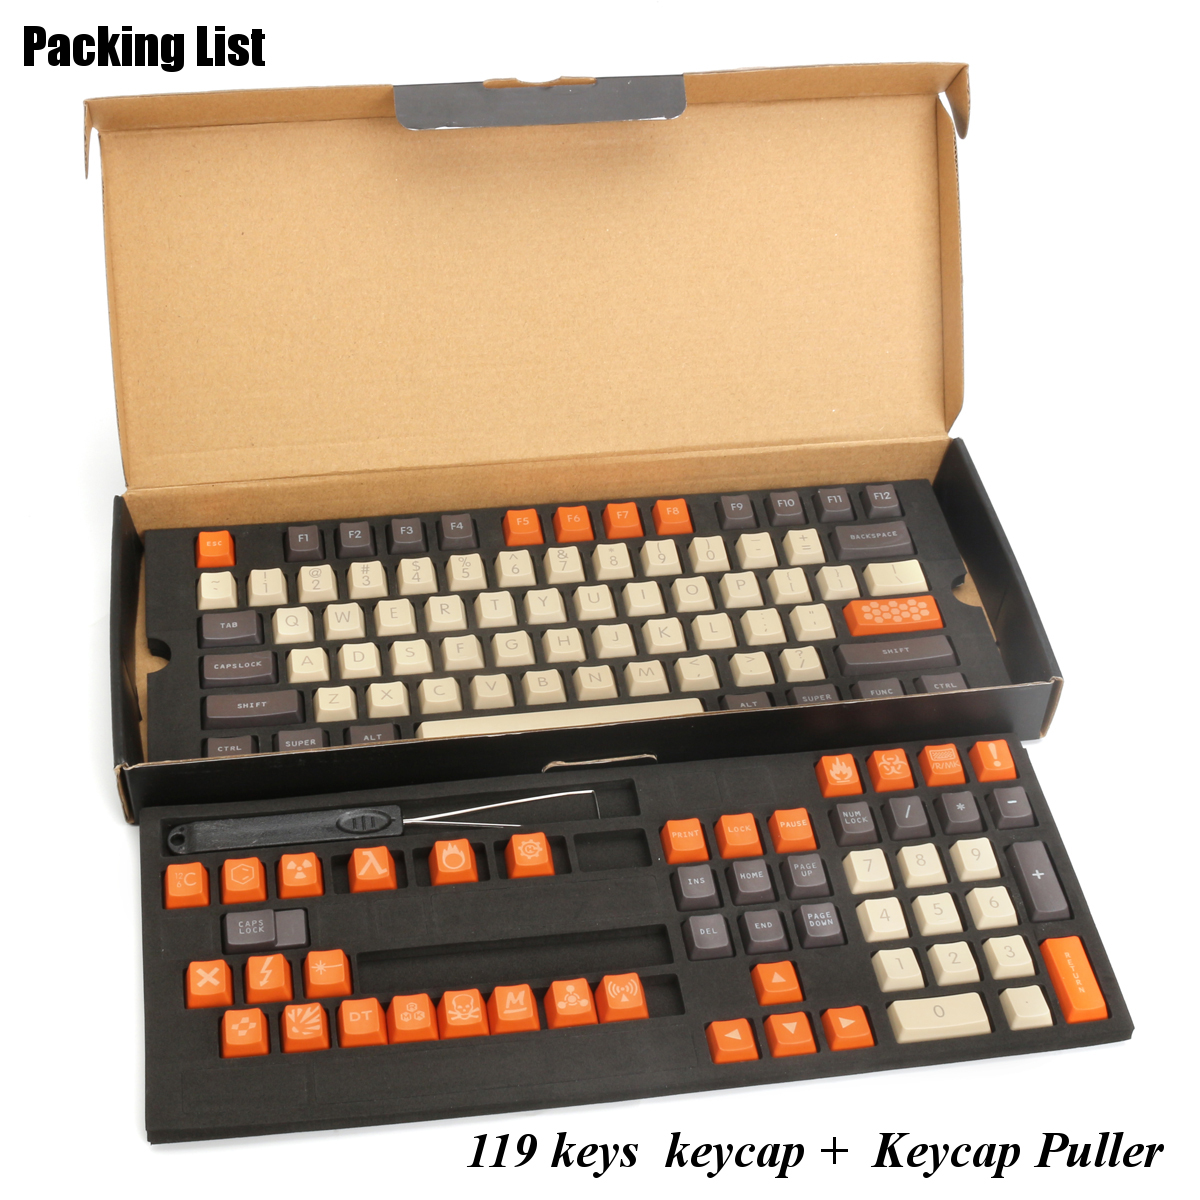 119 Keys Top Printed Carbon Colored PBT Thicken Keycap Key Caps Set with Keycap Puller